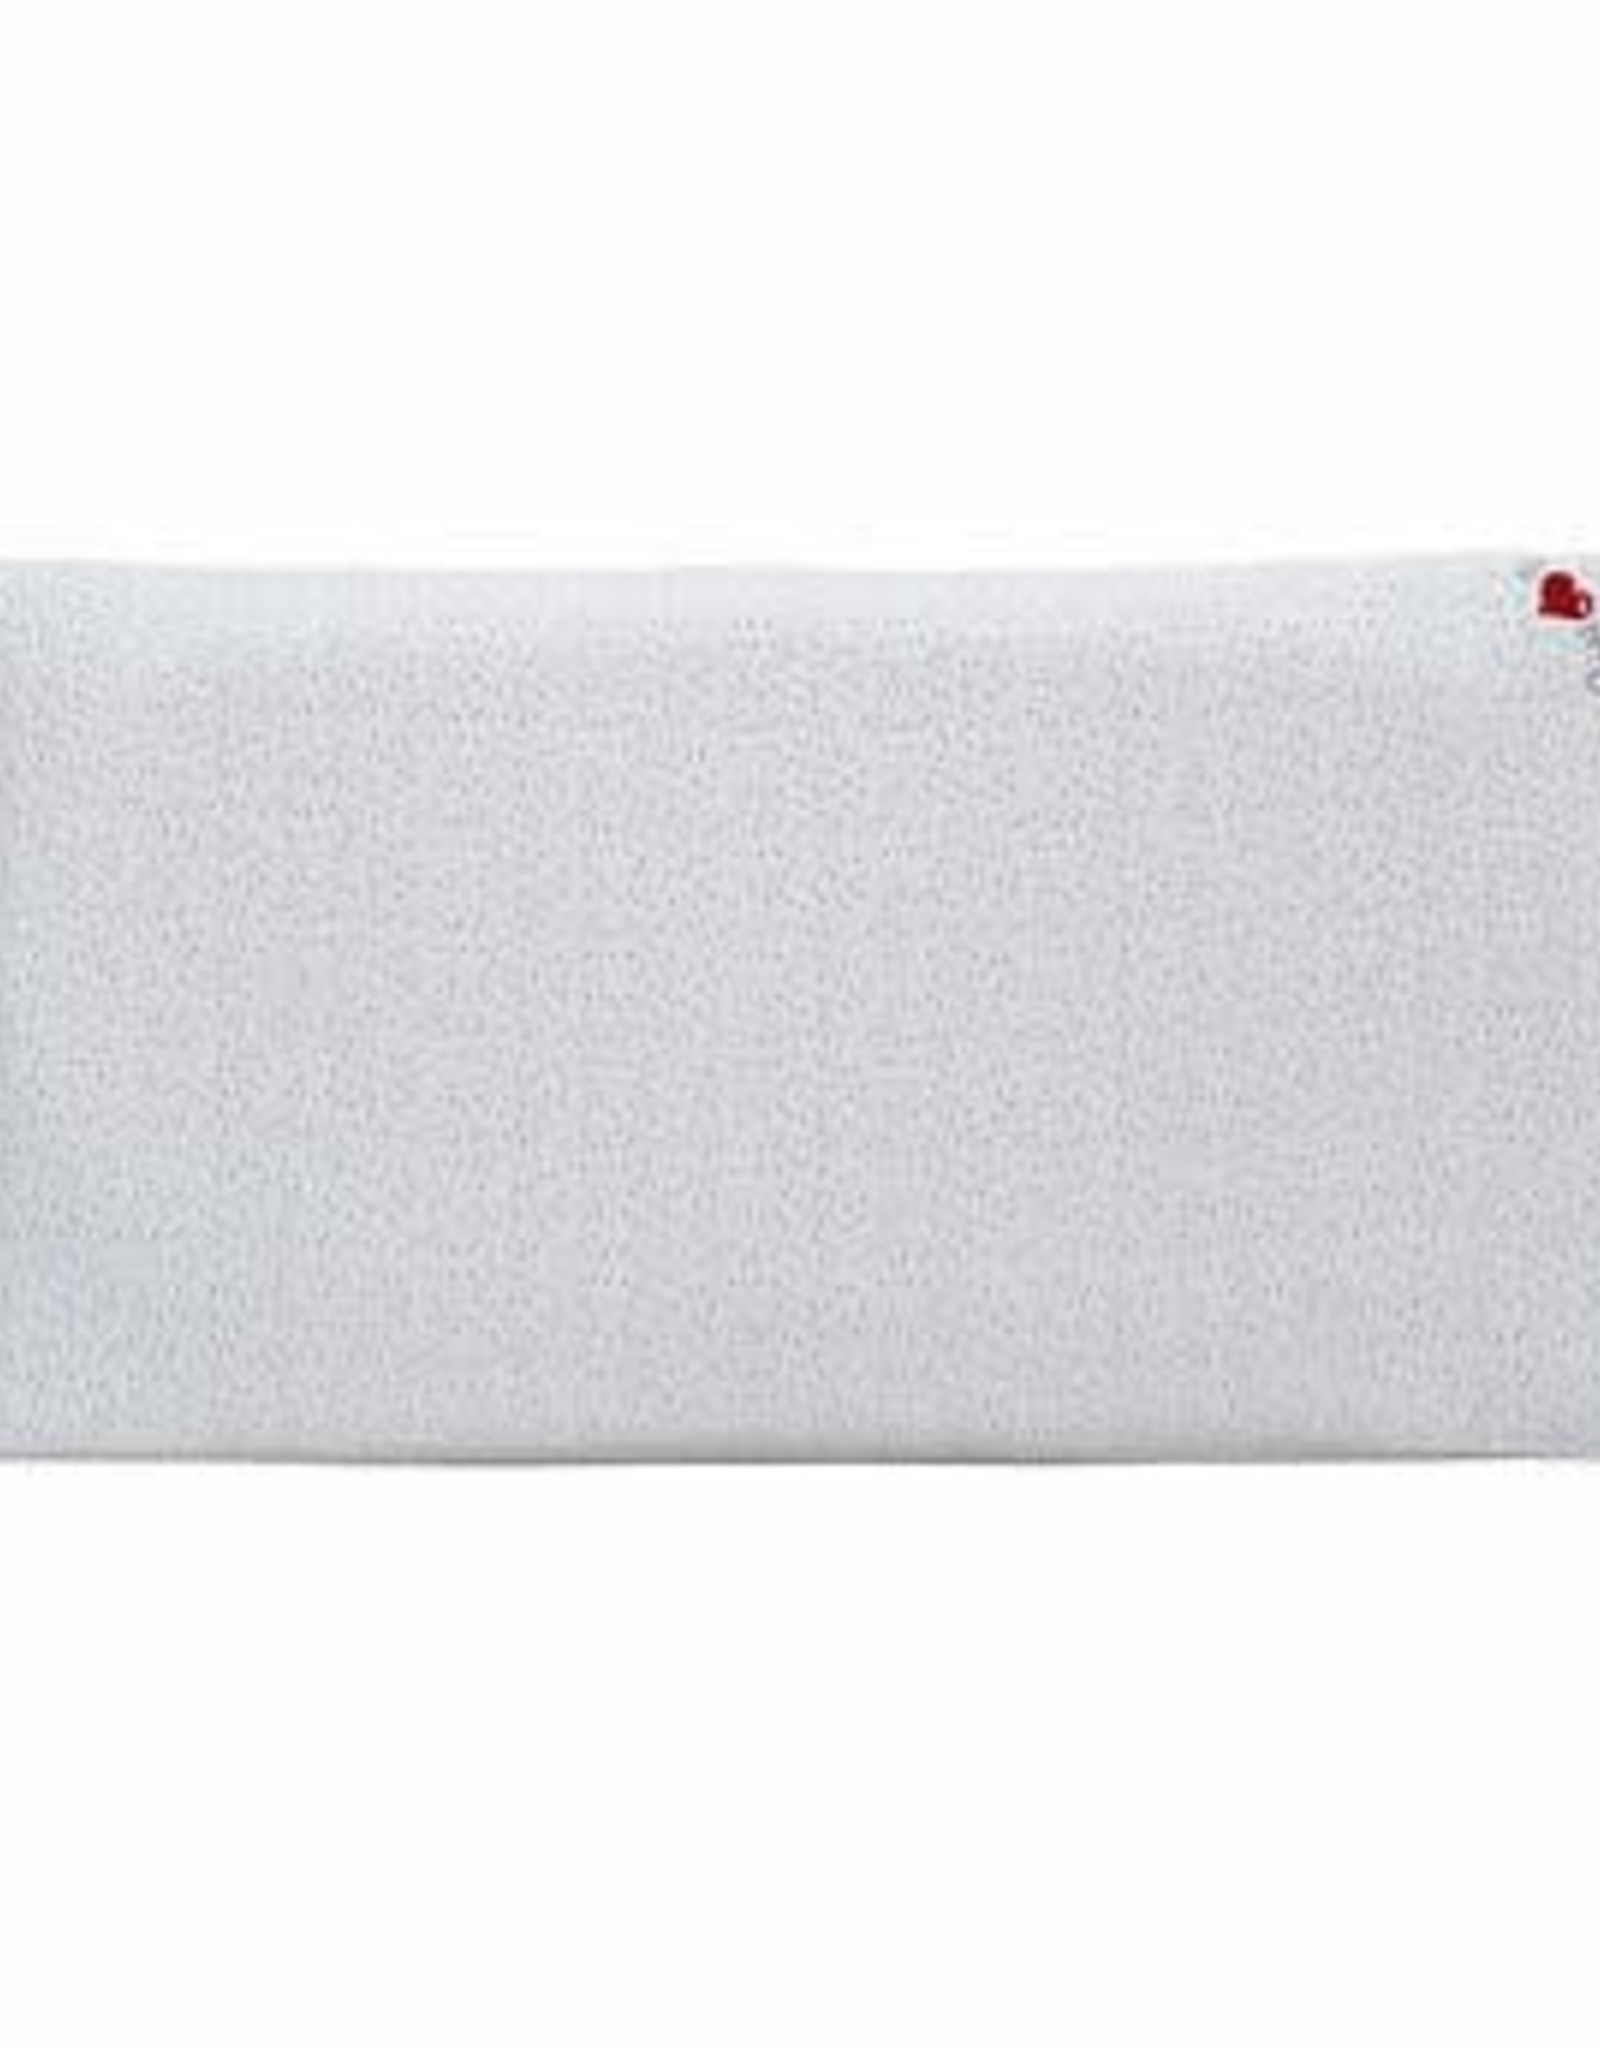 LMP WORLDWIDE INC Climate Control King Size Memory Foam Pillow